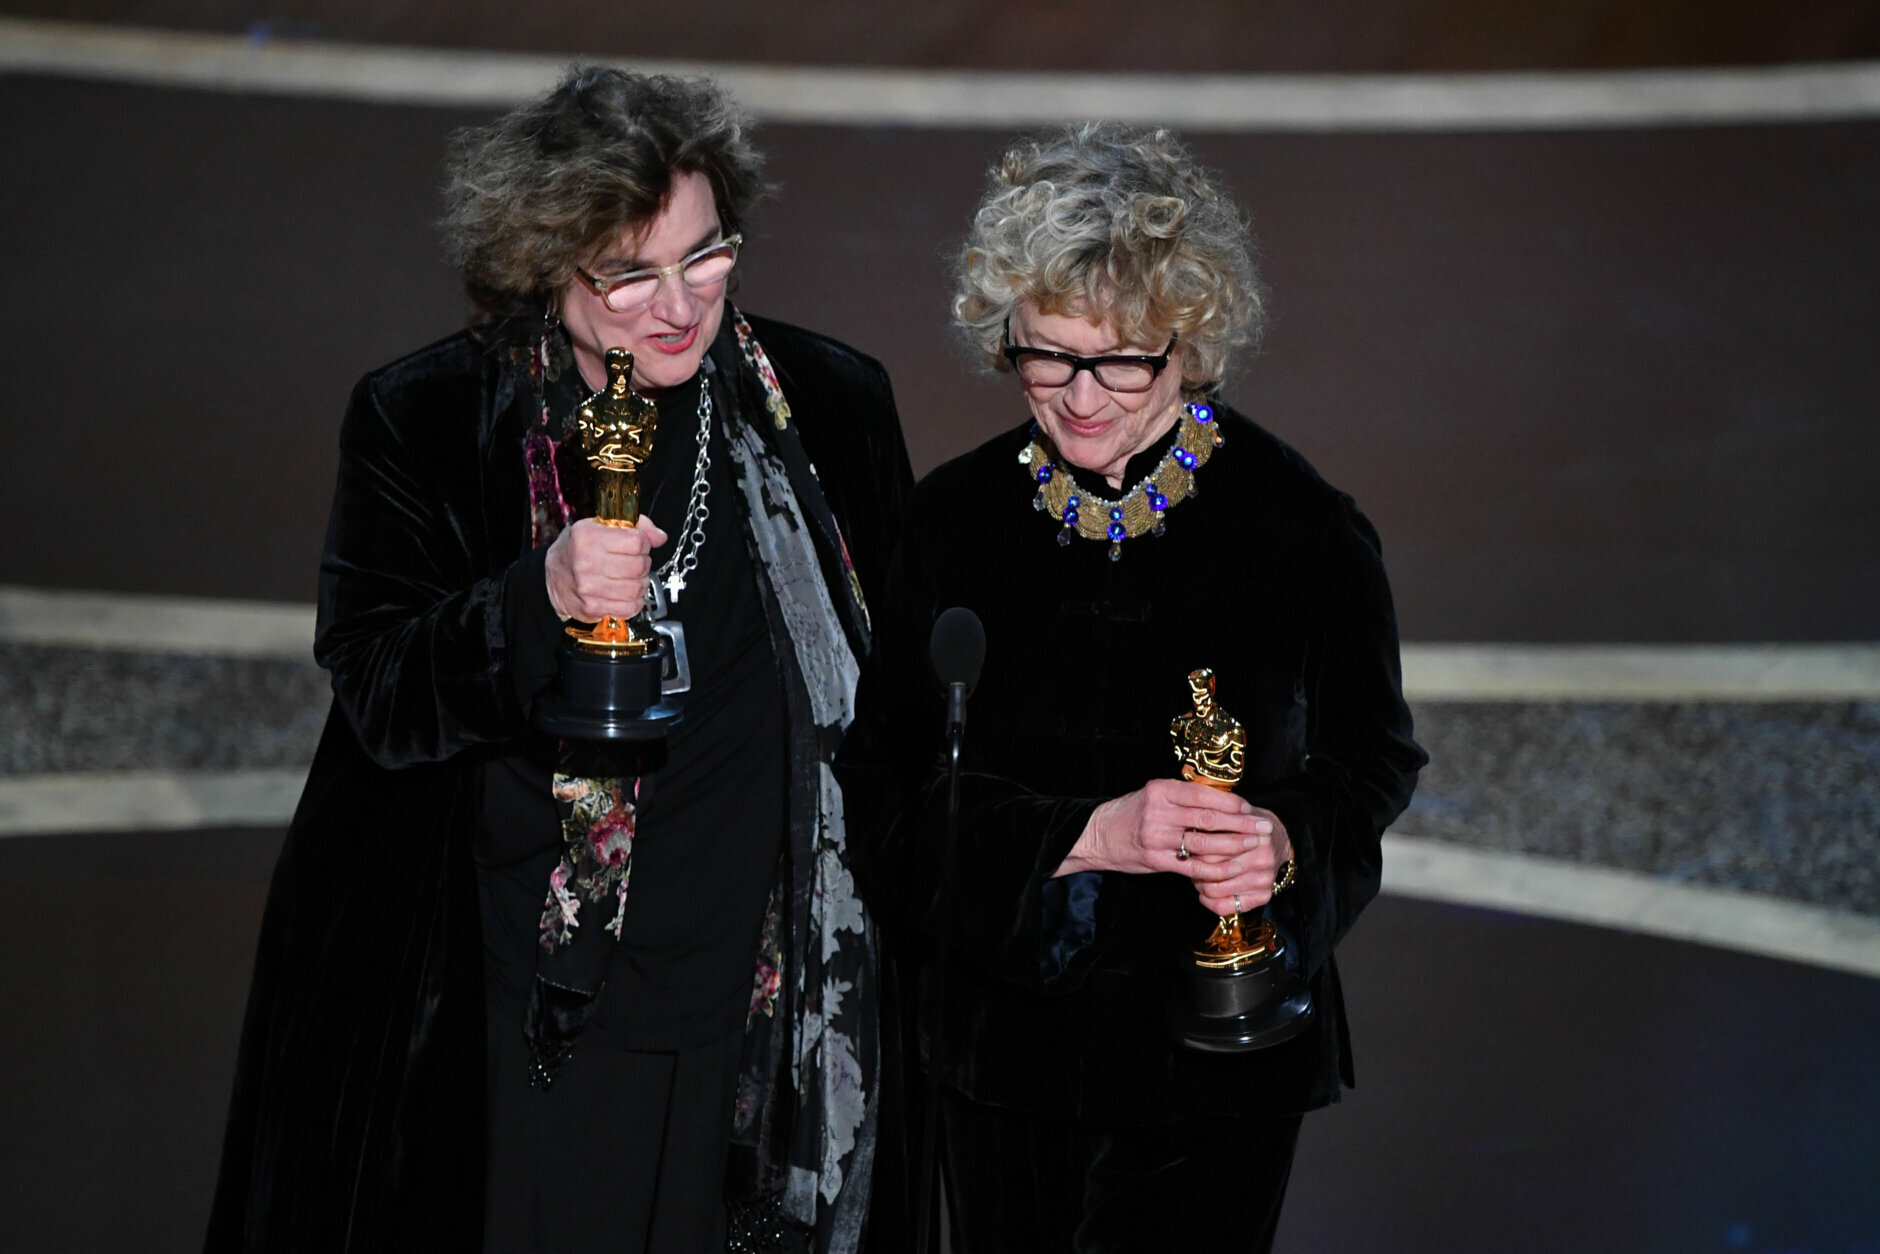 """Nancy Haigh (L) and Barbara Ling accept the award for Best Production Design for """"Once upon a Time...in Hollywood"""" during the 92nd Oscars at the Dolby Theatre in Hollywood, California on February 9, 2020. (Photo by Mark RALSTON / AFP) (Photo by MARK RALSTON/AFP via Getty Images)"""